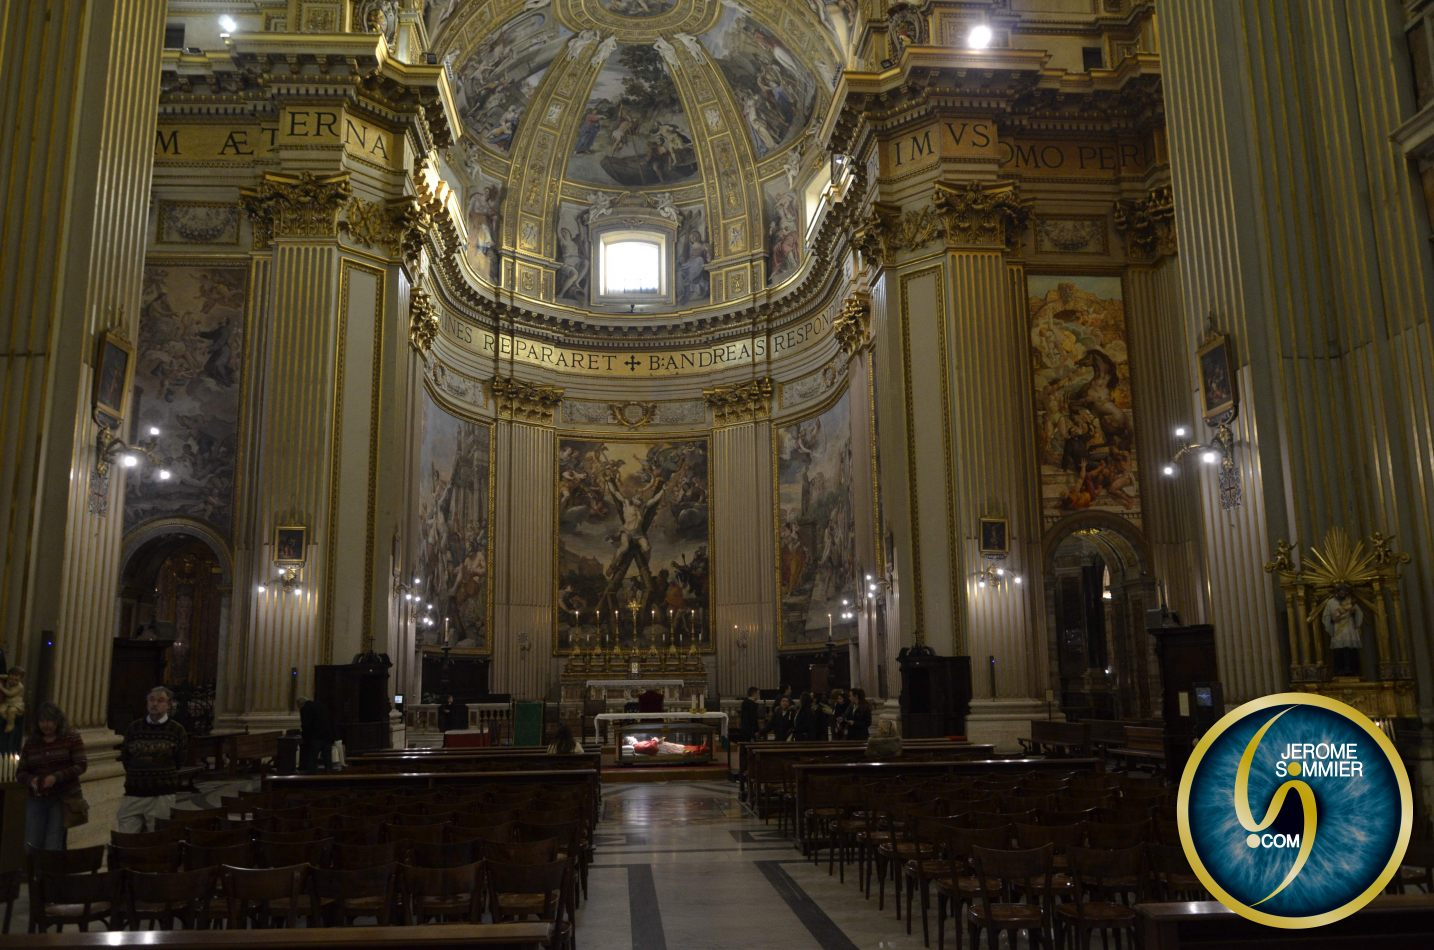 Jerome Sommier Photos - Travel & Events: Rome